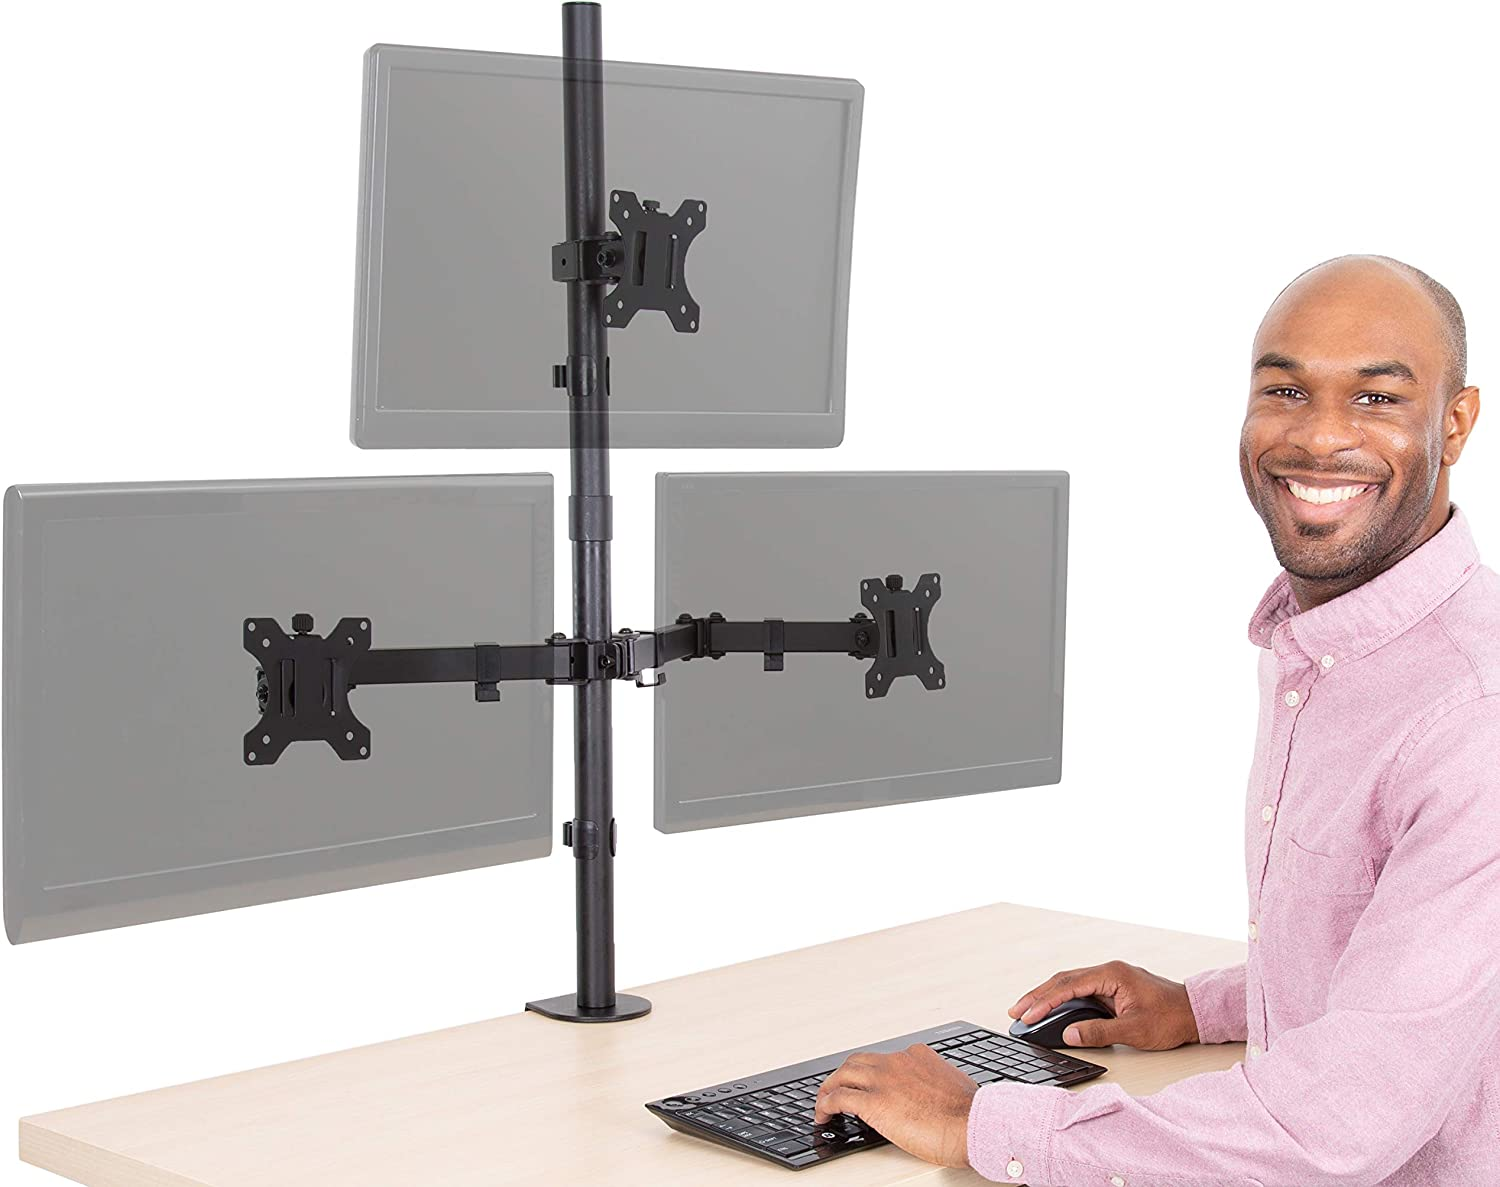 Stand Steady 9 Monitor Mount Desk Stand  Height Adjustable Triple Monitor  Stand with Desk Clamp Full Articulation VESA Mount Fits Most LCD/LED